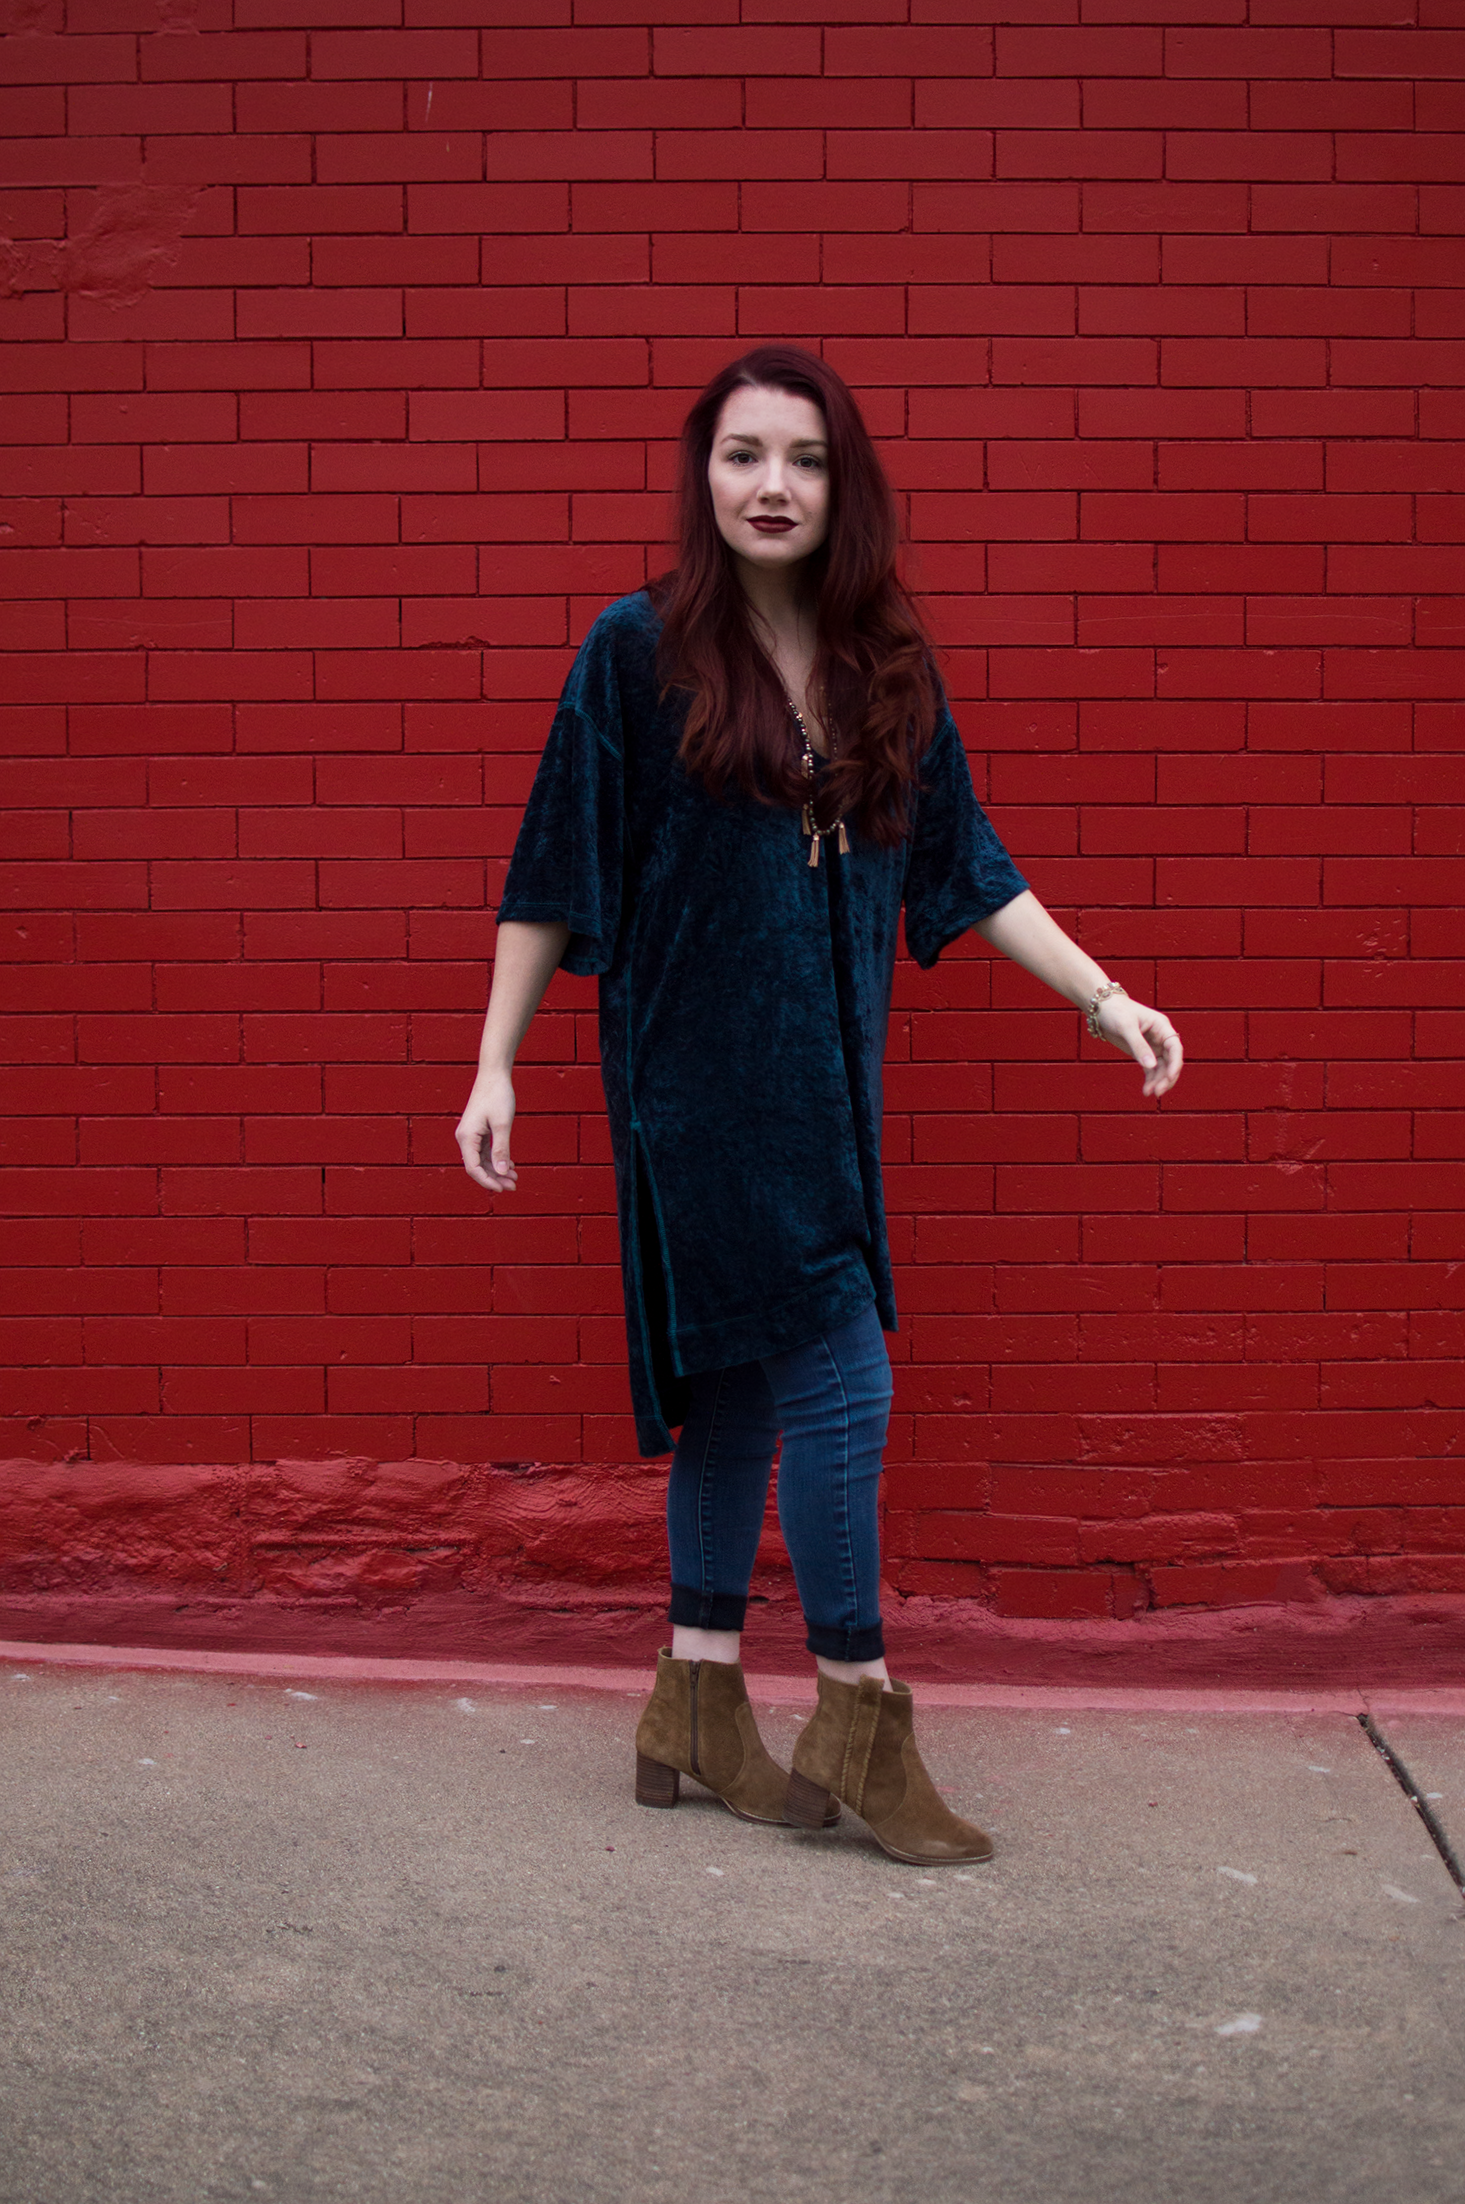 Free People velvet tunic + skinny jeans + suede ankle booties + Kendra Scott jewelry